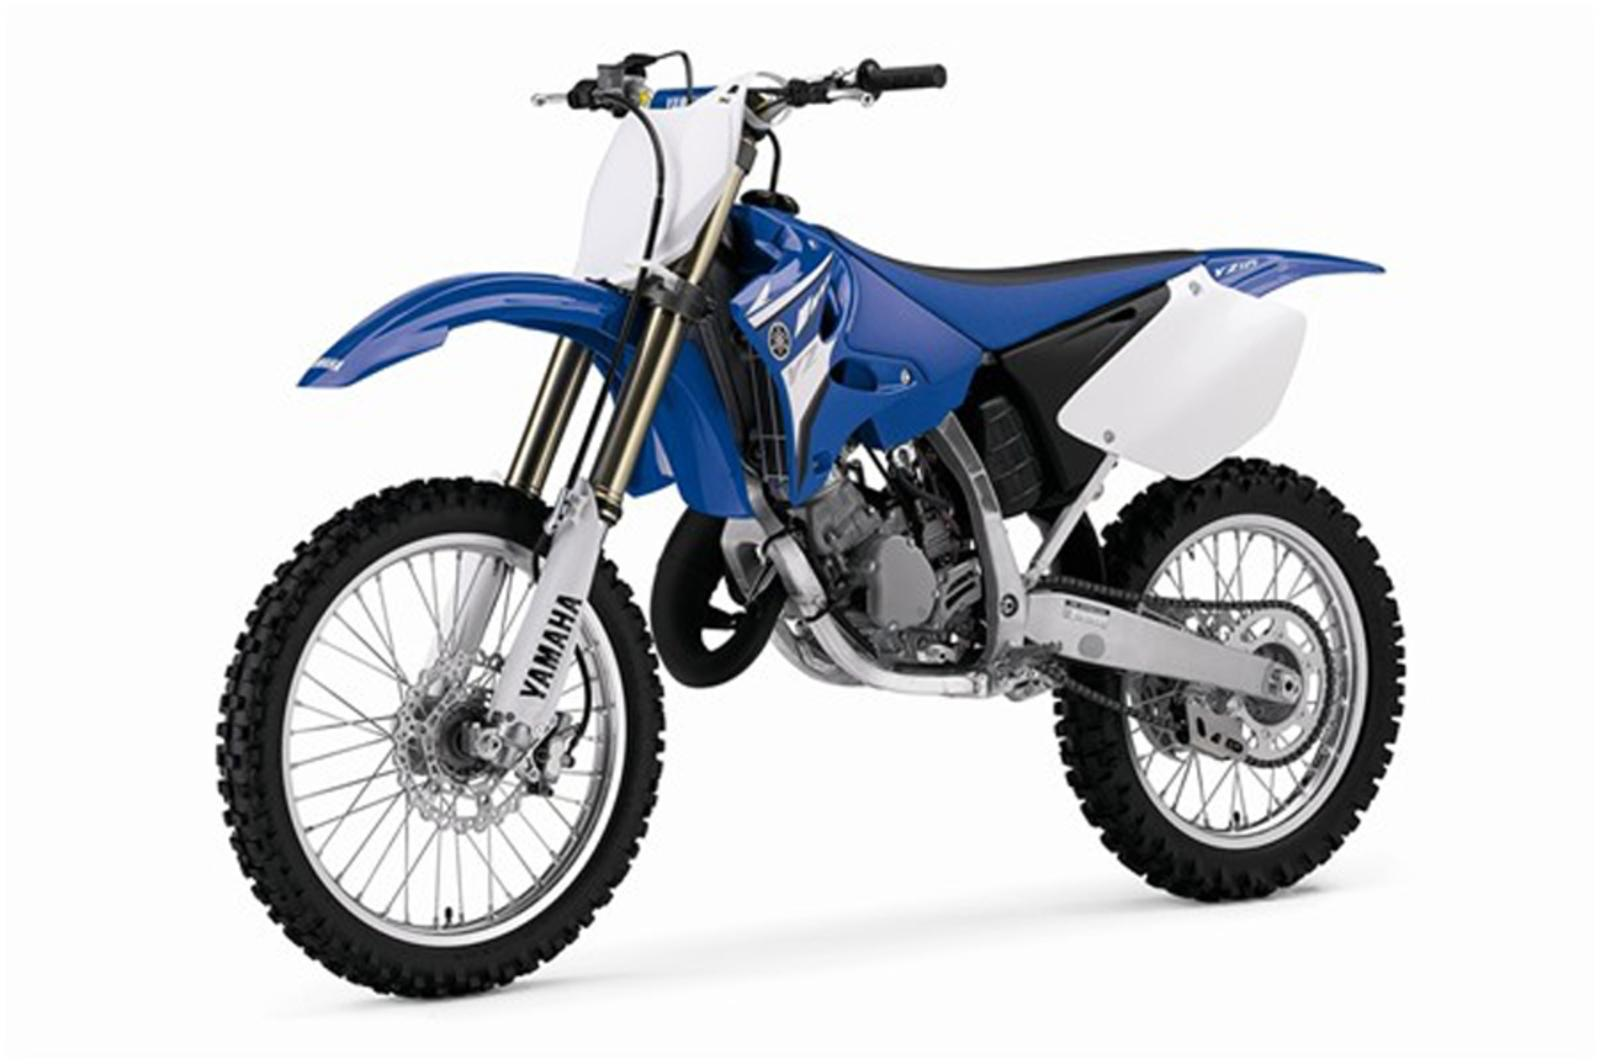 2008 yamaha yz125 review top speed. Black Bedroom Furniture Sets. Home Design Ideas